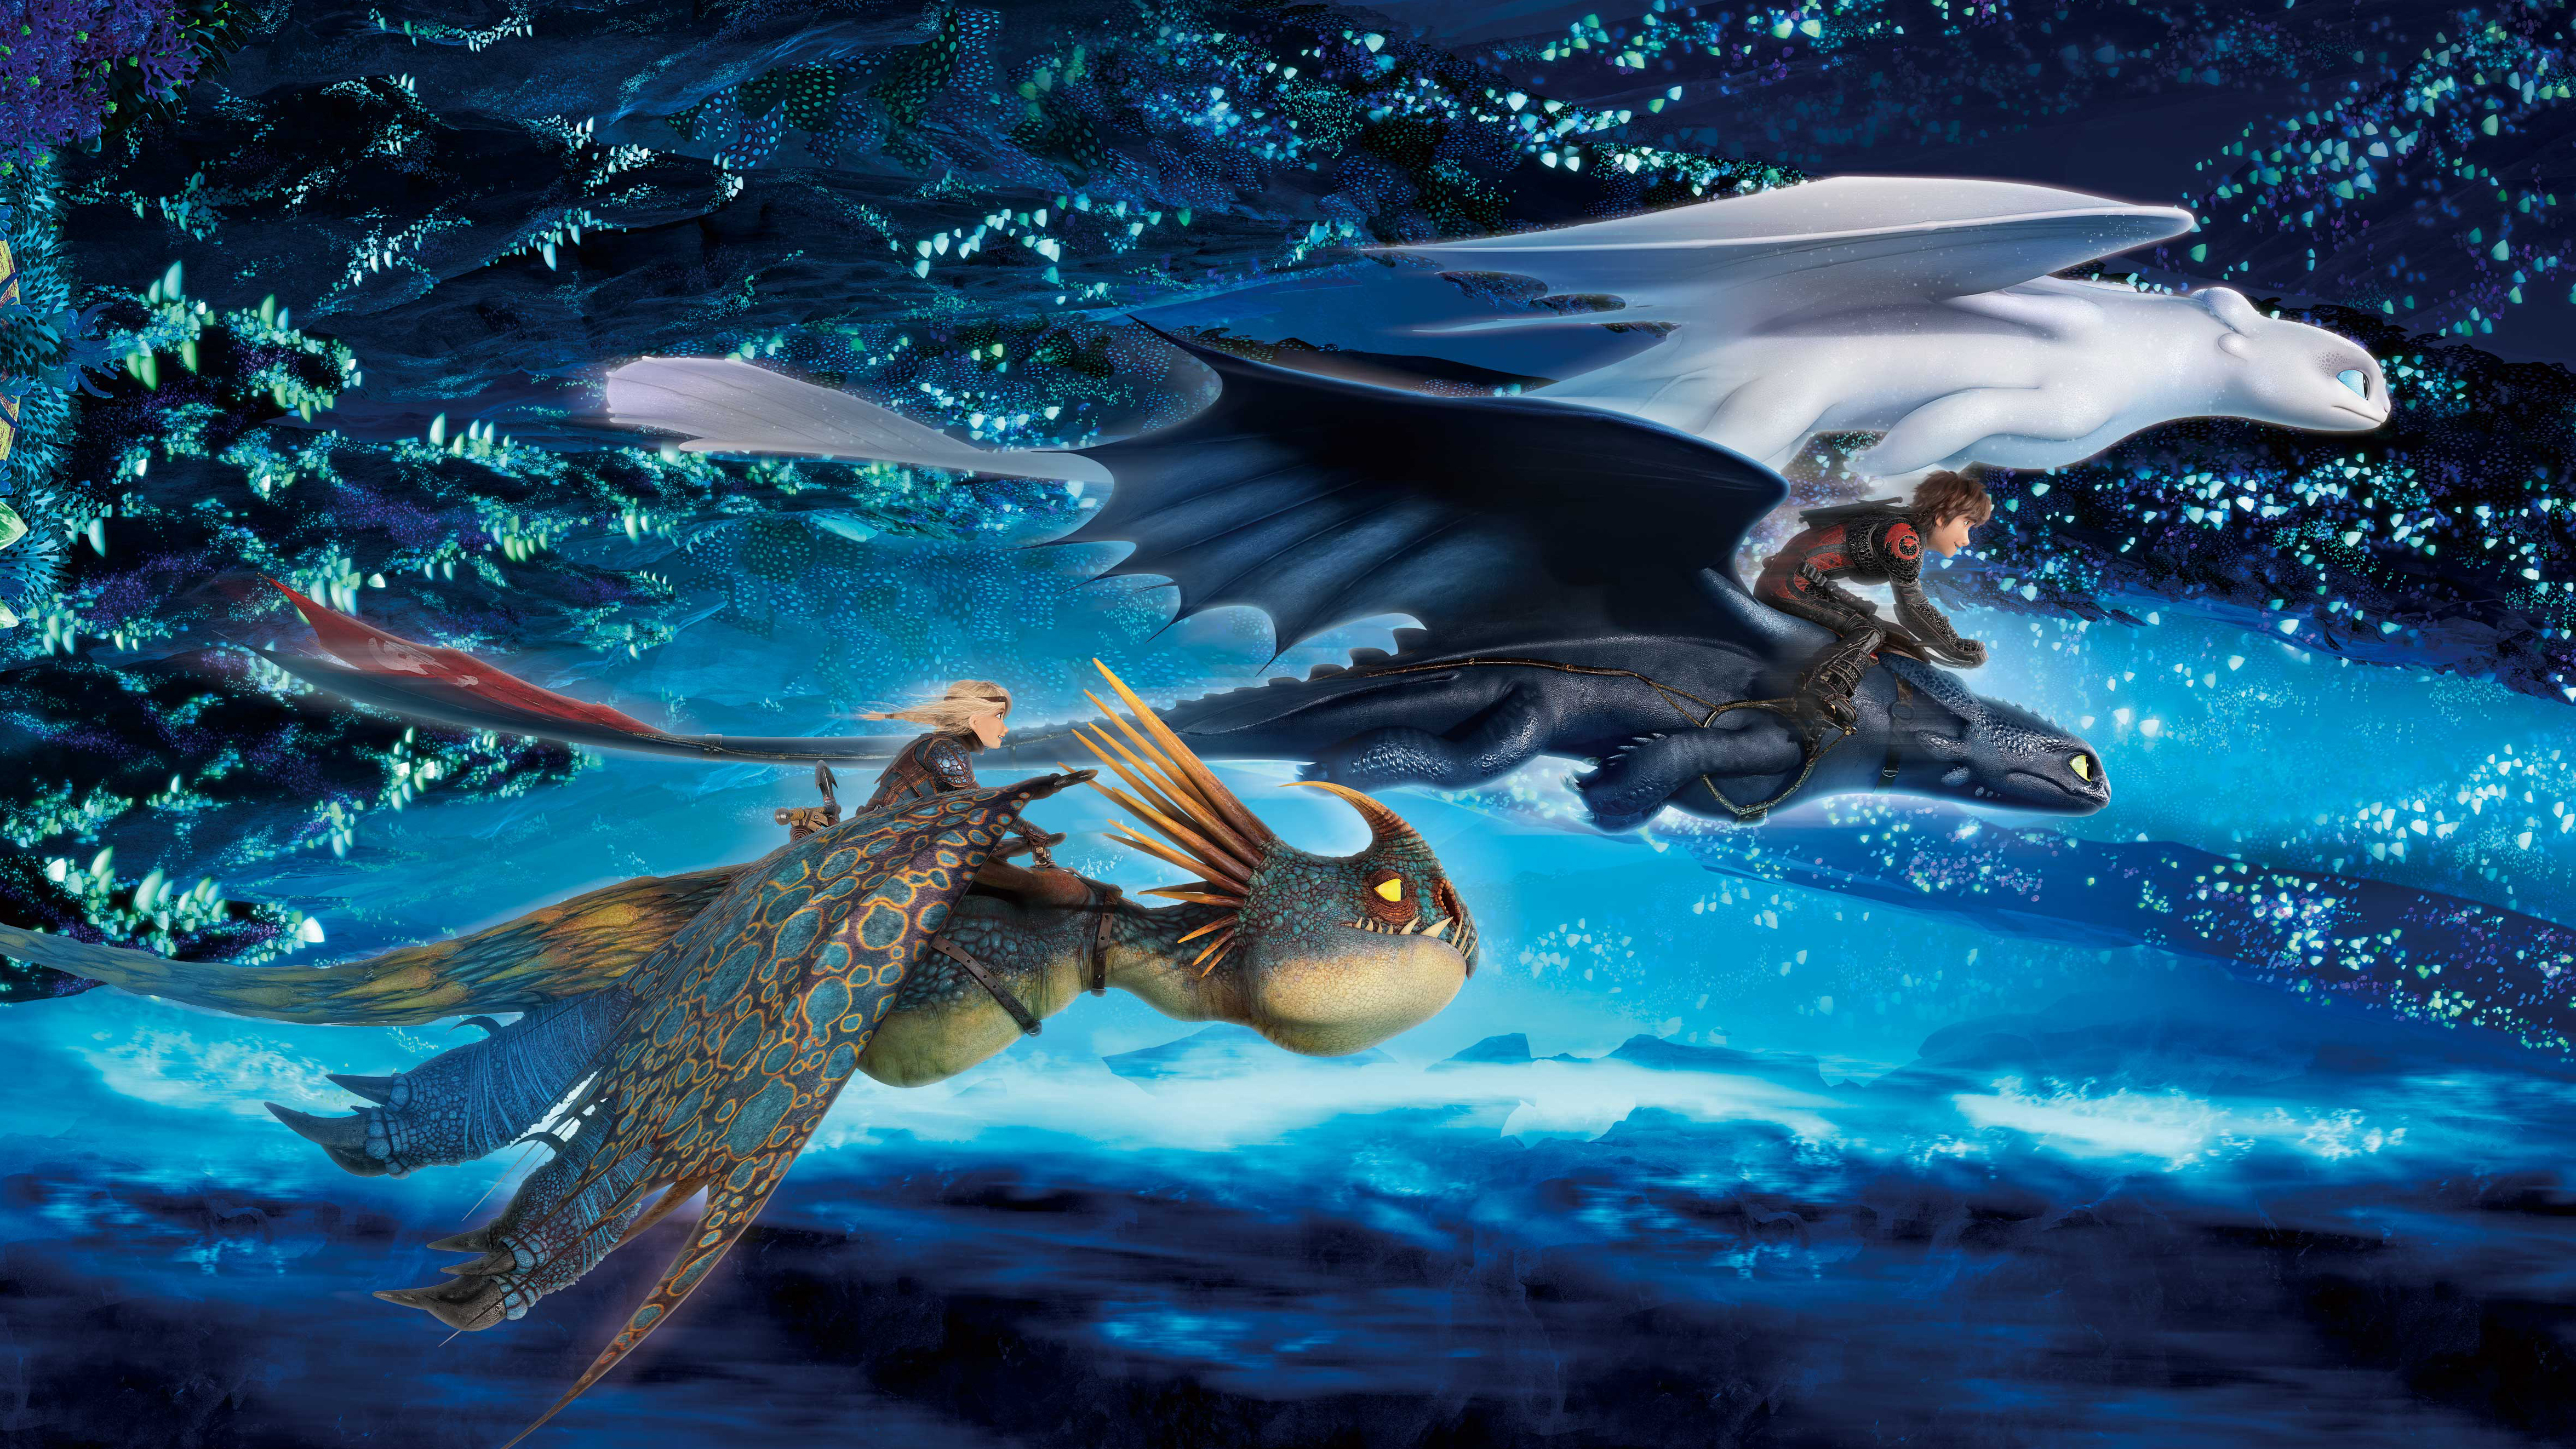 How To Train Your Dragon The Hidden World 4k Ultra Hd Wallpaper